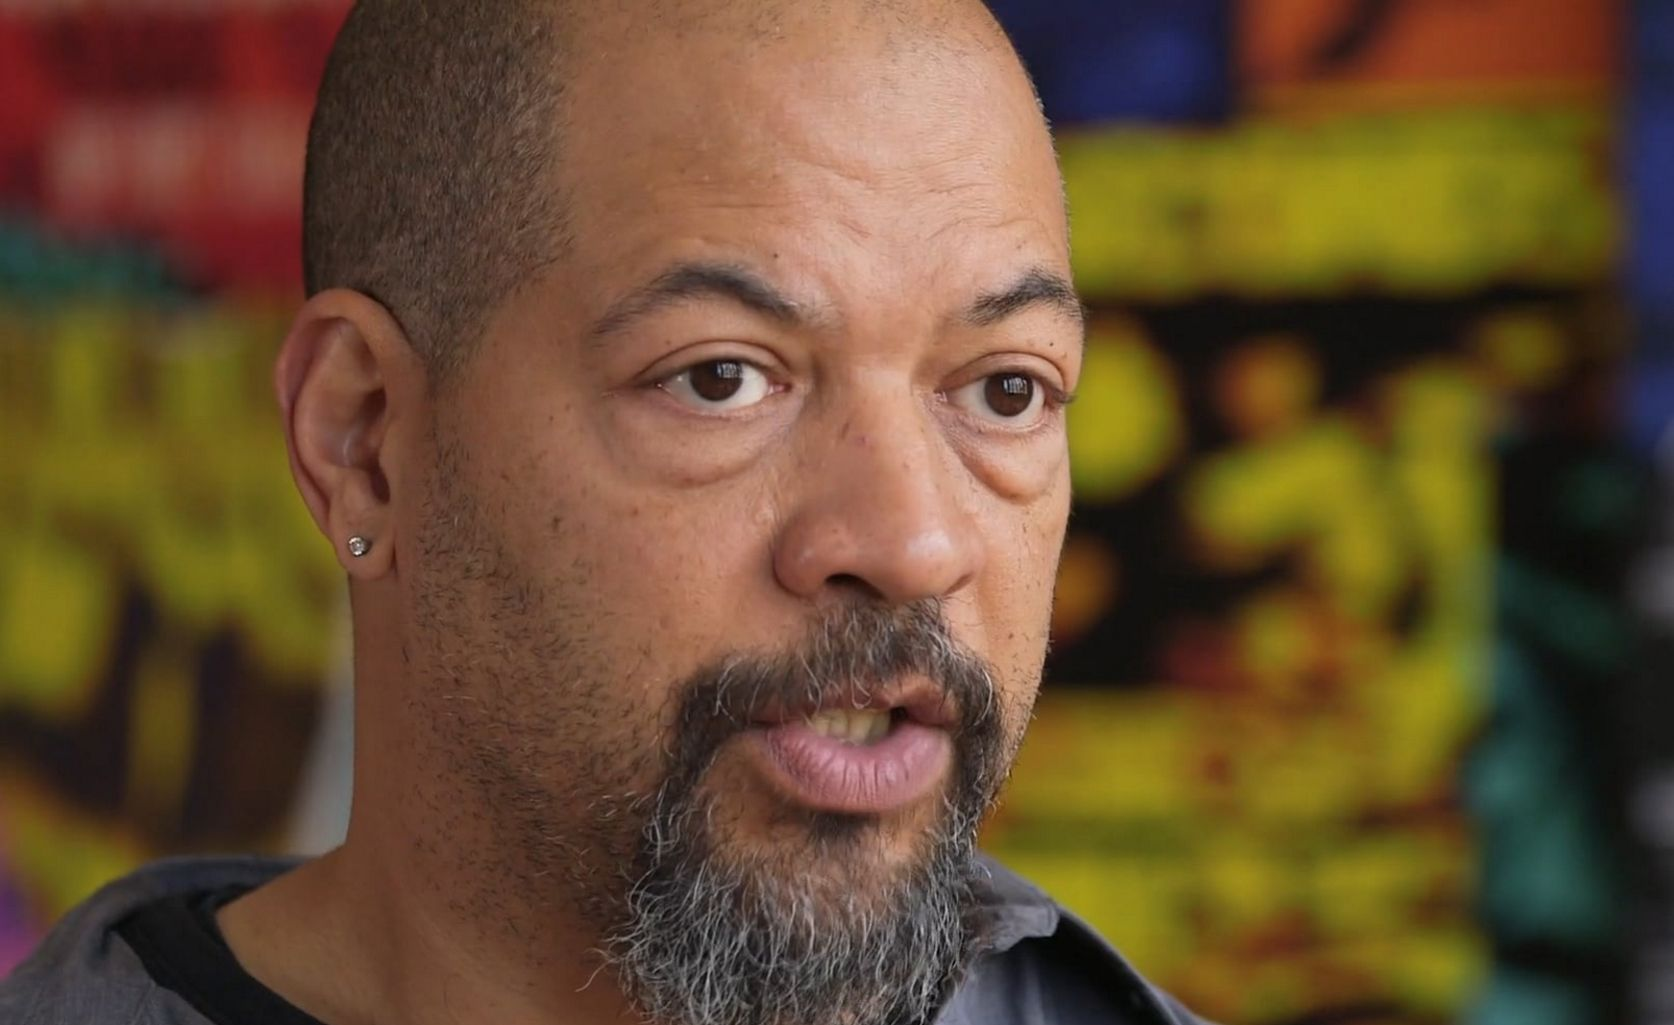 Gary Simmons, Conversation with the artist, June 2016